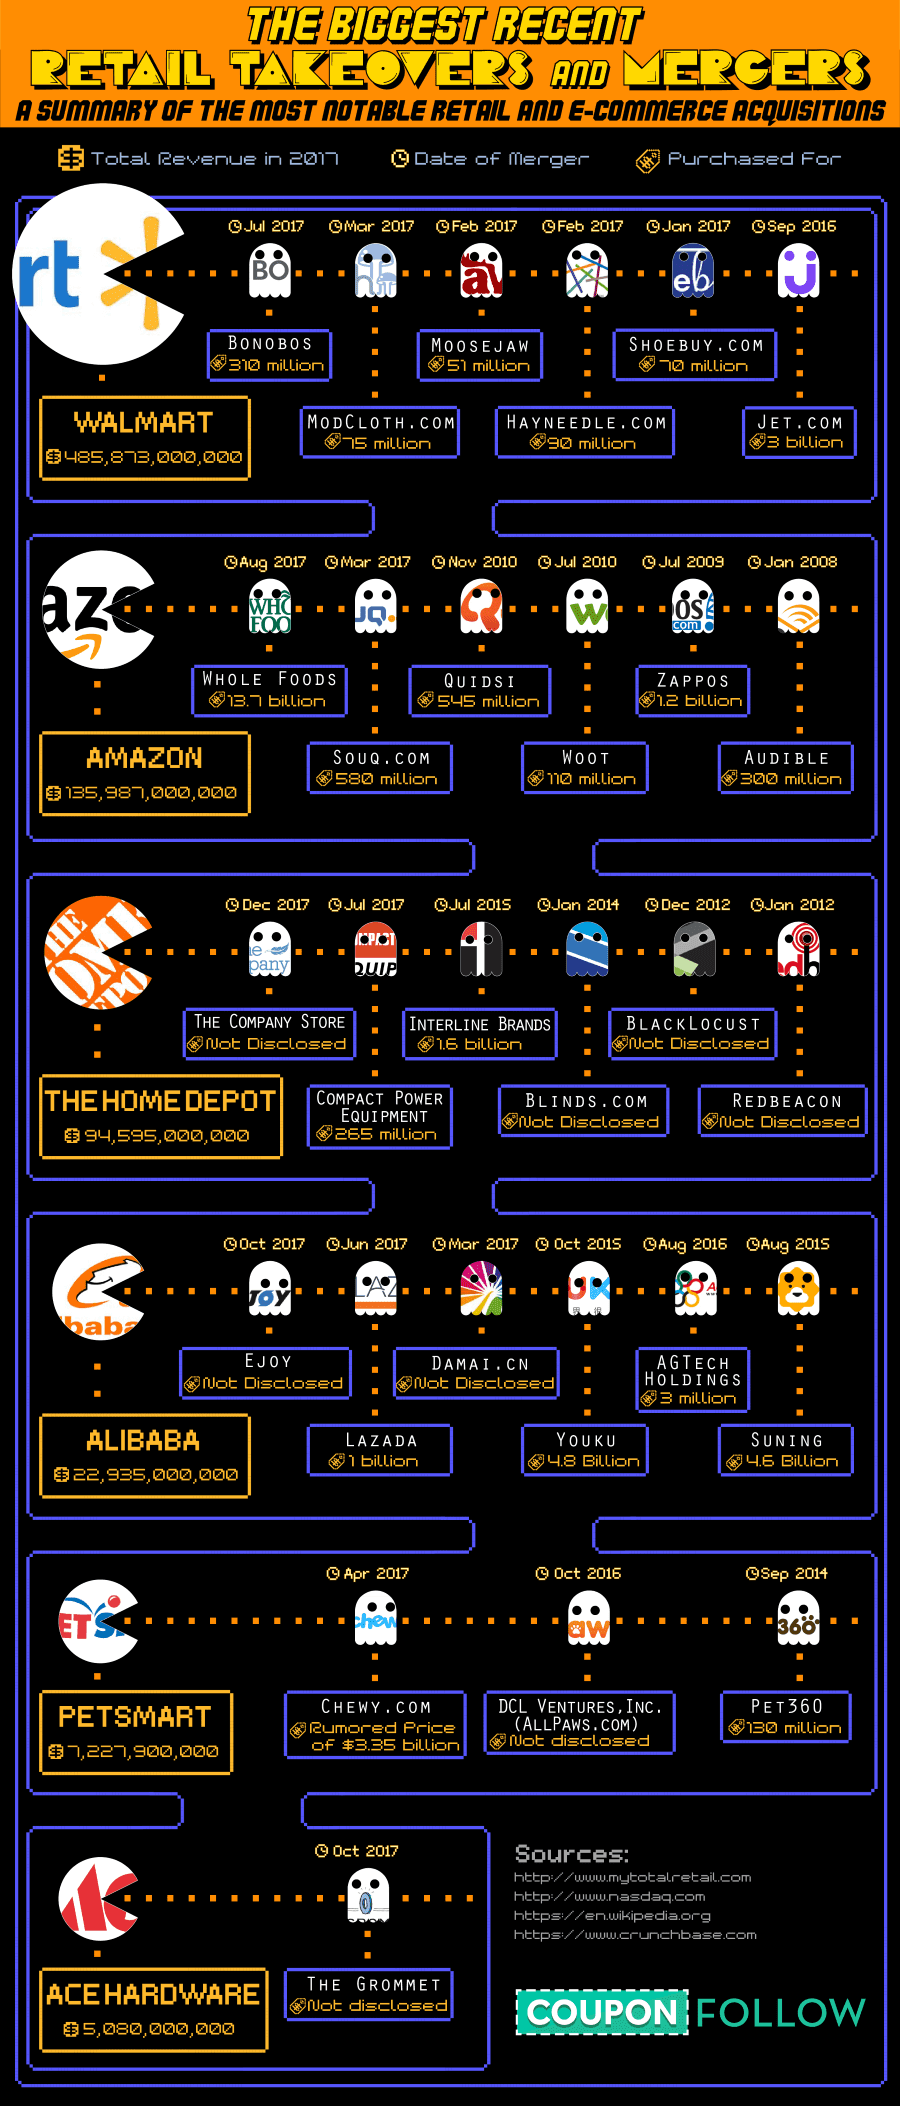 The Biggest Retail Takeovers and Mergers #infographic